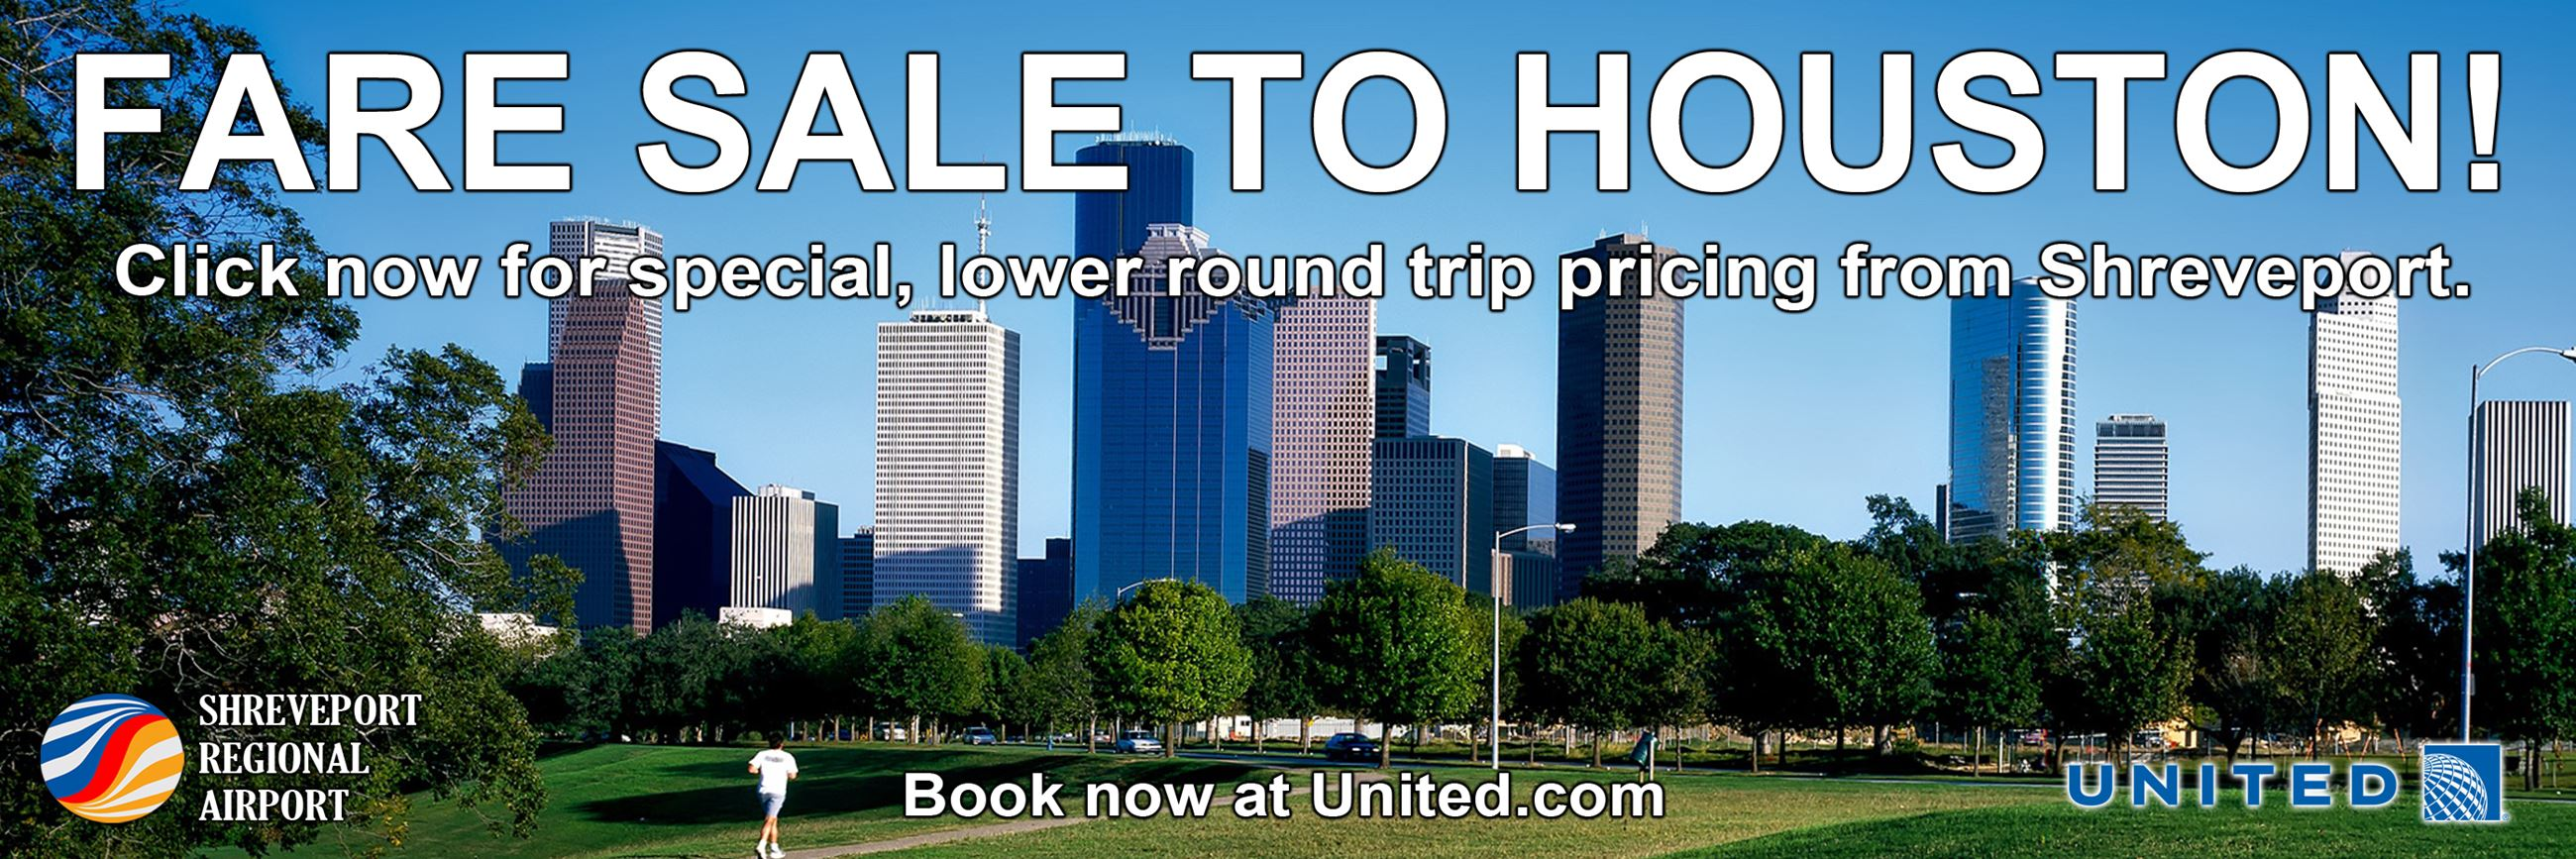 Web_United Houston Fare Sale